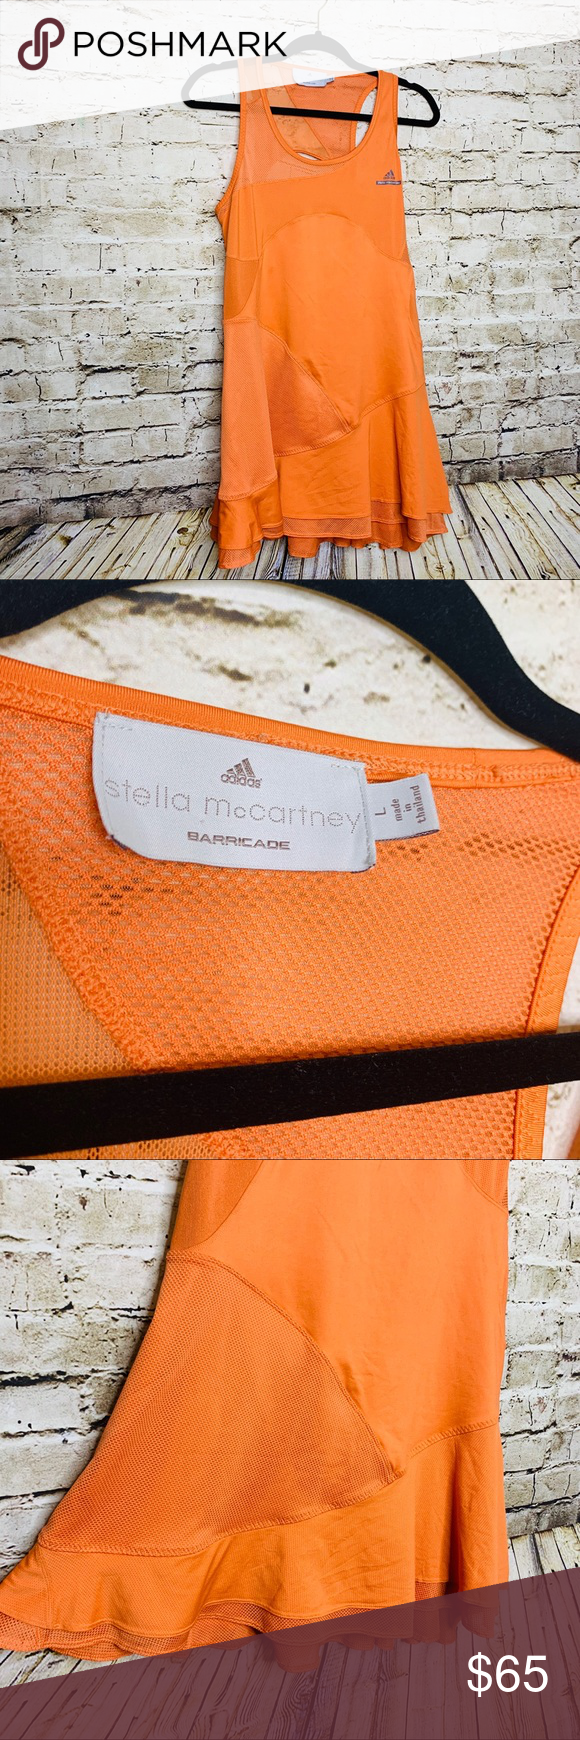 Stella McCartney Adidas Tennis Dress Orange L Rare Stella McCartney Adidas Tennis Dress Orange L Rare Stand out in this color and design. Open back. Adidas Barricade. Twirl skirt. Hard to find.  T7 Adidas by Stella McCartney Dresses Mini #twirlskirt Stella McCartney Adidas Tennis Dress Orange L Rare Stella McCartney Adidas Tennis Dress Orange L Rare Stand out in this color and design. Open back. Adidas Barricade. Twirl skirt. Hard to find.  T7 Adidas by Stella McCartney Dresses Mini #twirlskirt